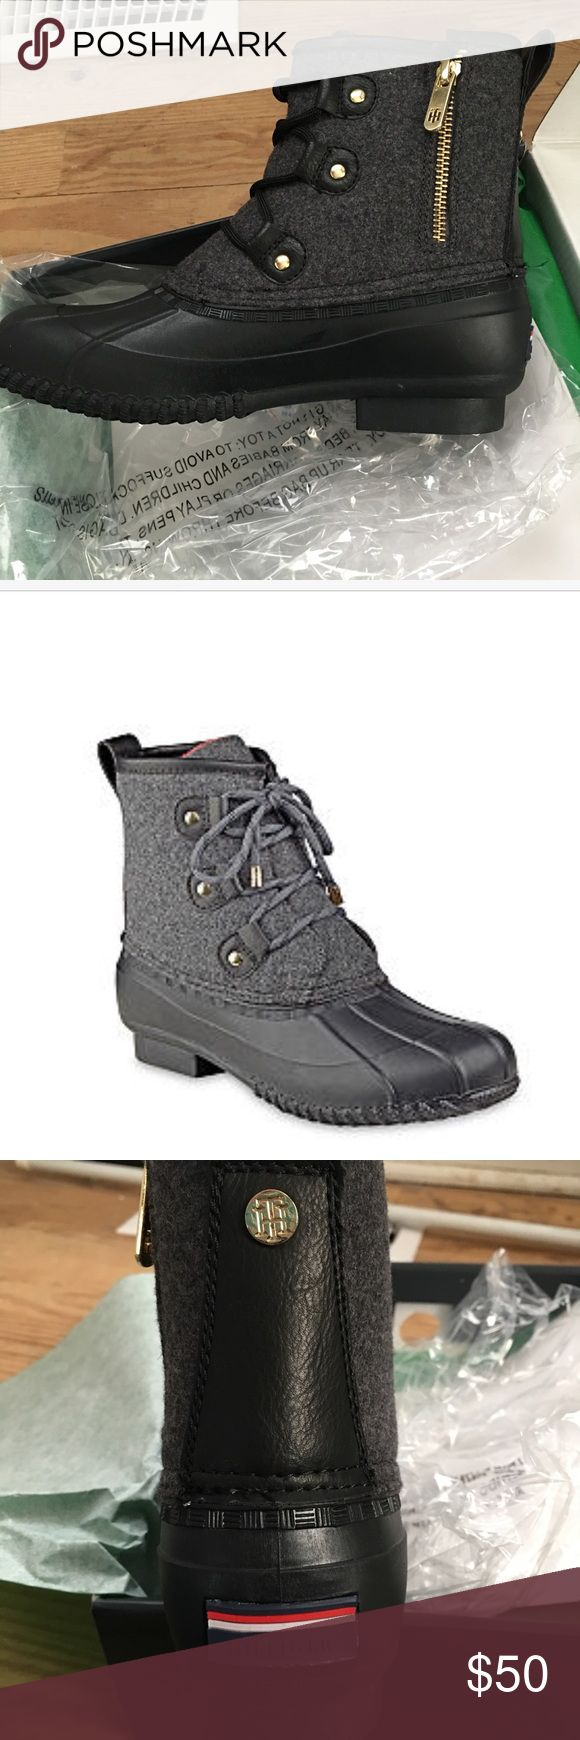 """Tommy Hilfiger charcoal classic duck boots. NIB. Get ready for April showers with this pair of classic duck boots by Tommy Hilfiger.  Style is Reanna and tops are charcoal gray fabric with leather back strip and foot and bottoms are black rubber.  New in box.   * Manufacturers measurements:  1"""" heel; 6"""" shaft height; 10"""" calf circumference * Round toe * Lace-up and zip closure Tommy Hilfiger Shoes Winter & Rain Boots"""